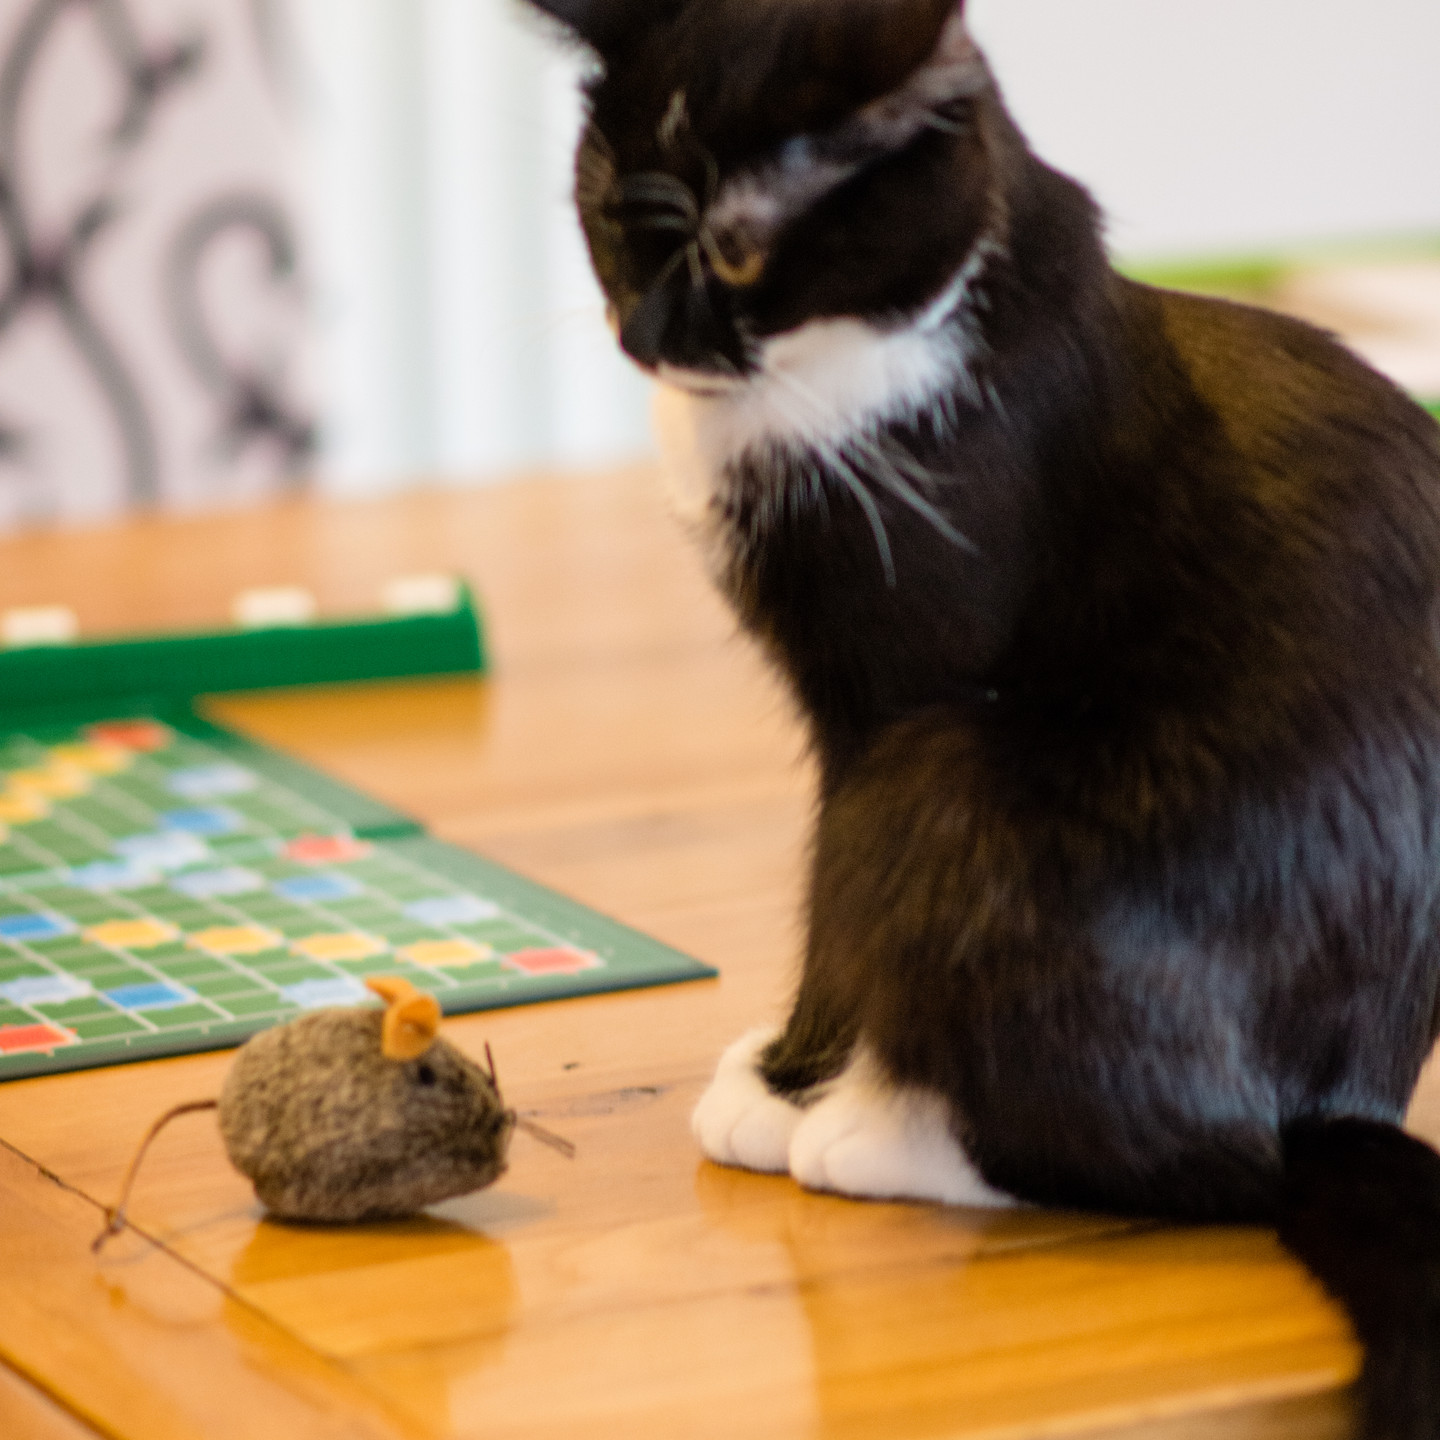 Pet Photographer Solihull, lifestyle photograph of a little cat sitting by a little mouse toy